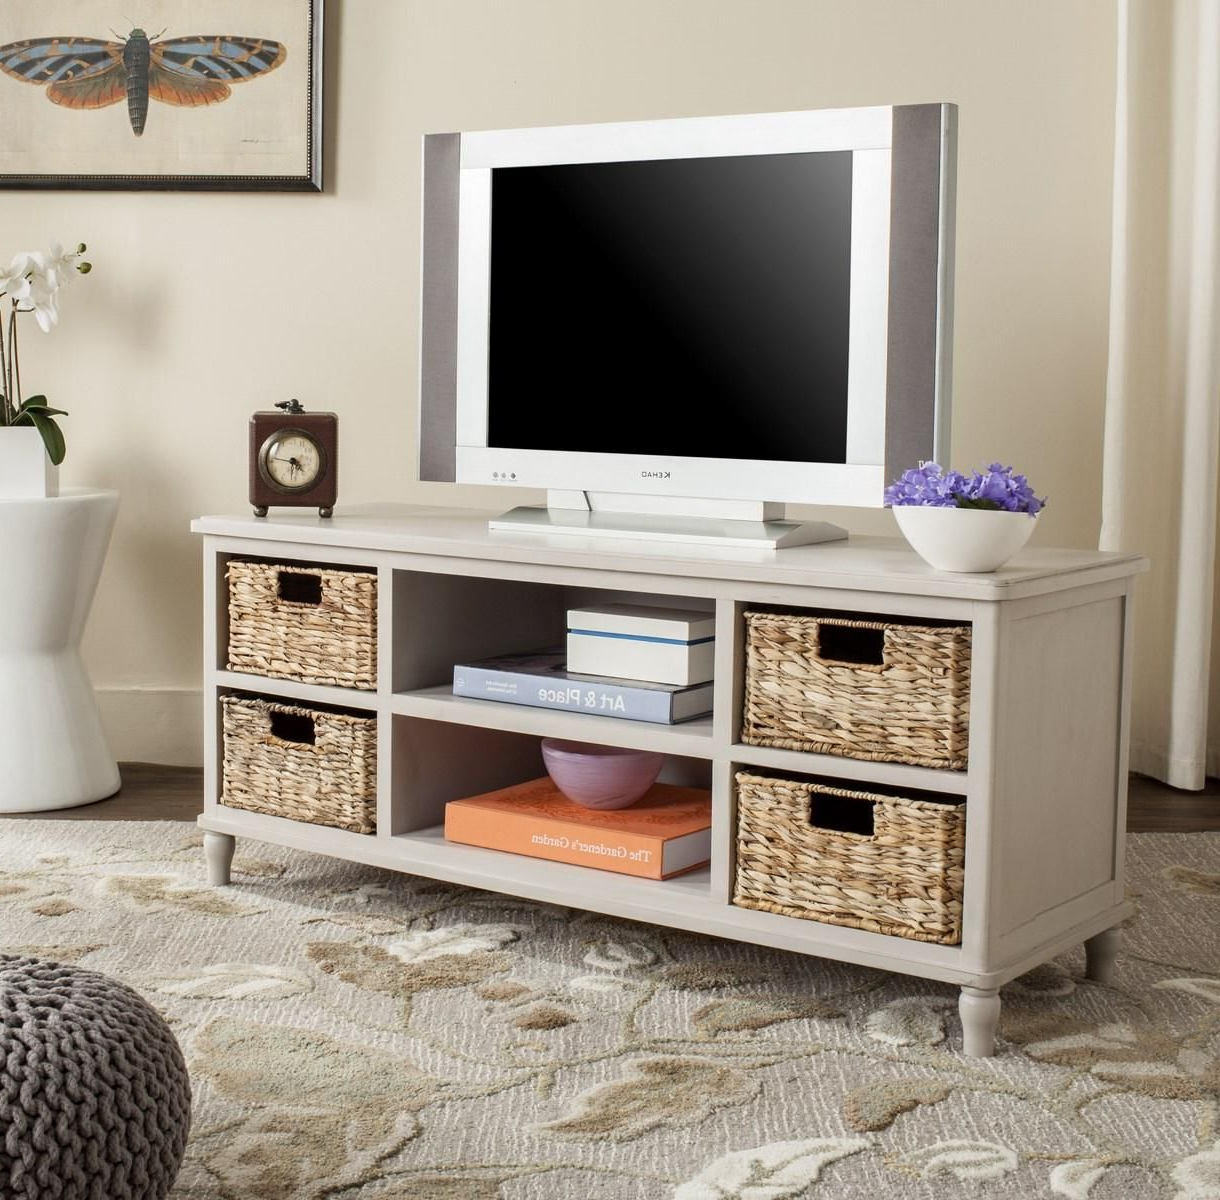 Amh5745d Tv Cabinet – Furniture| Home Decor | Entertainment Throughout Natural Cane Media Console Tables (View 2 of 20)